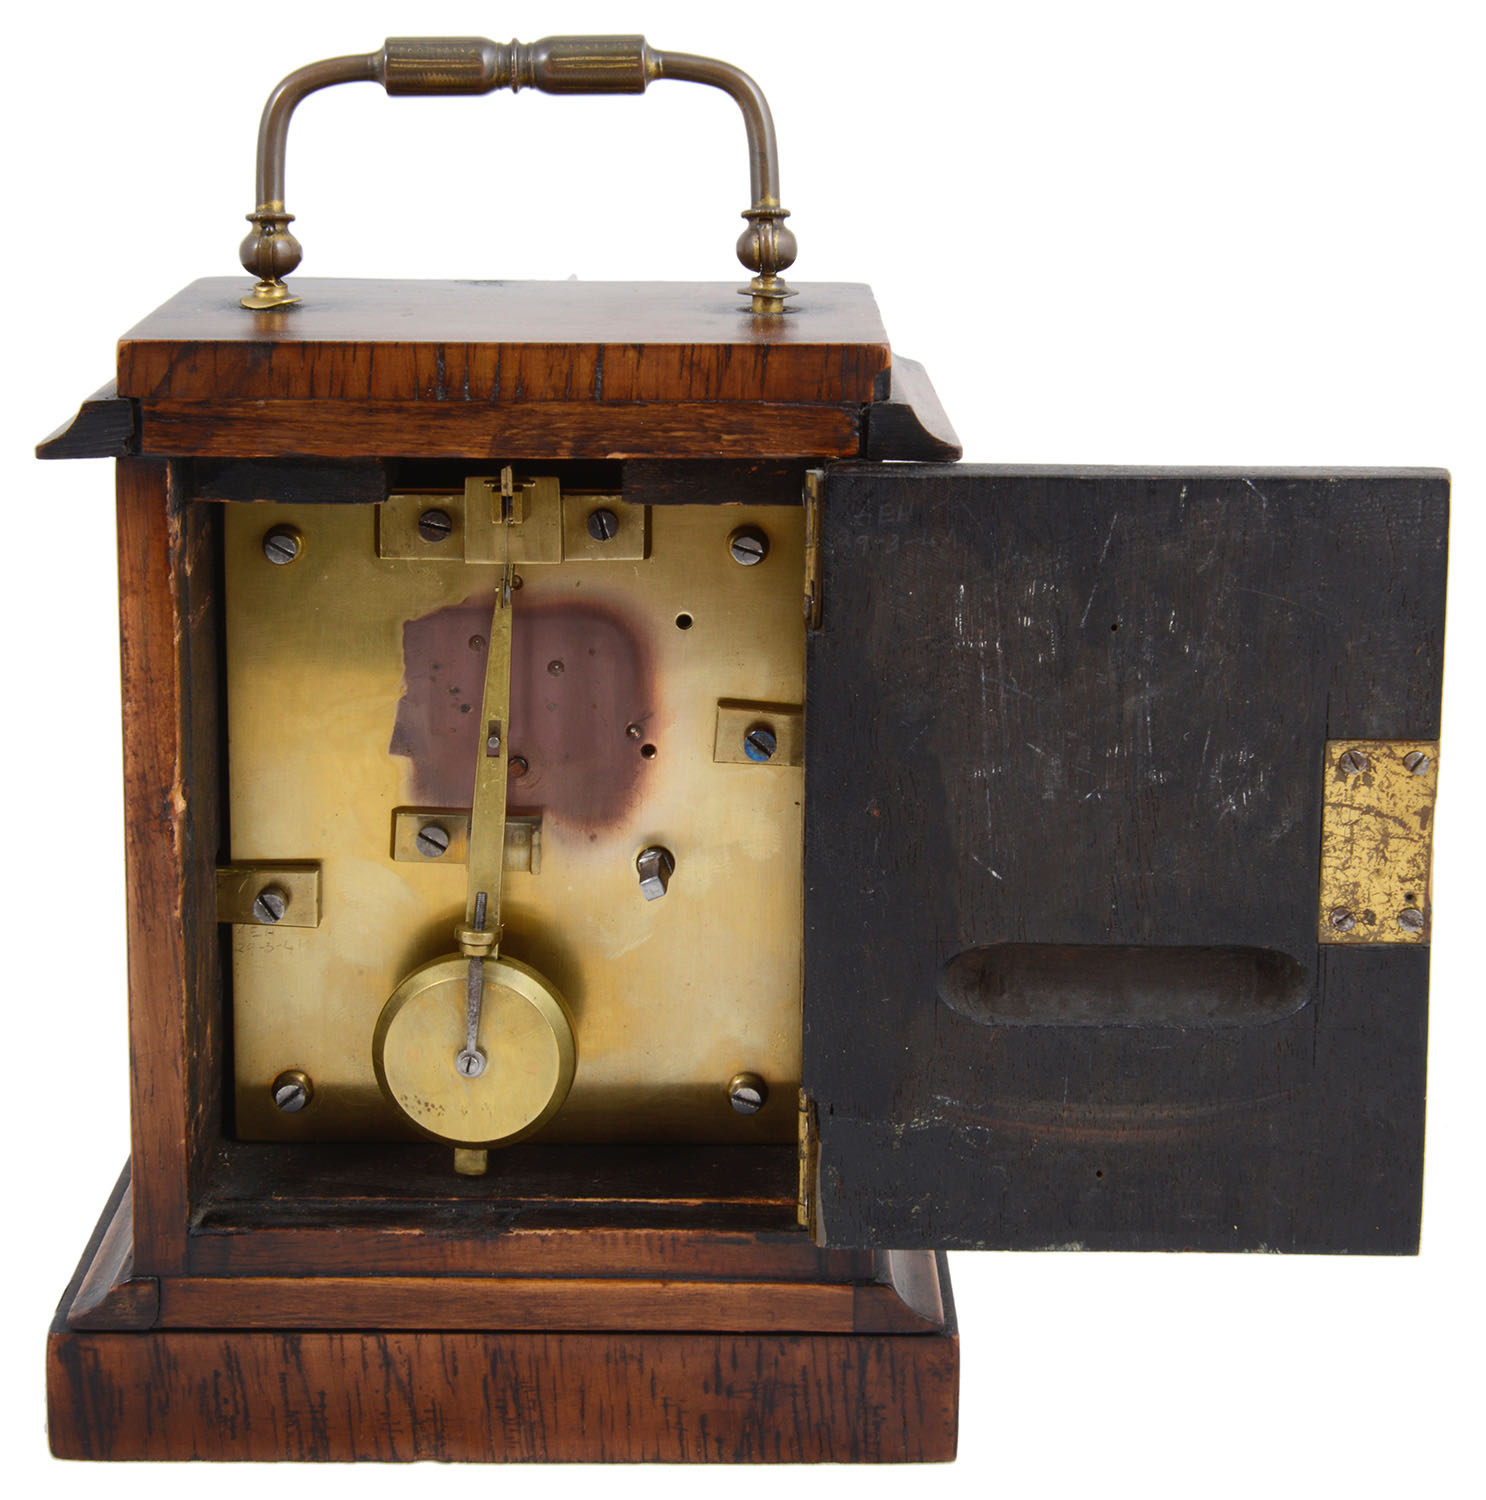 Lot 23 - A mid 19th century French rosewood cased carriage timepiece